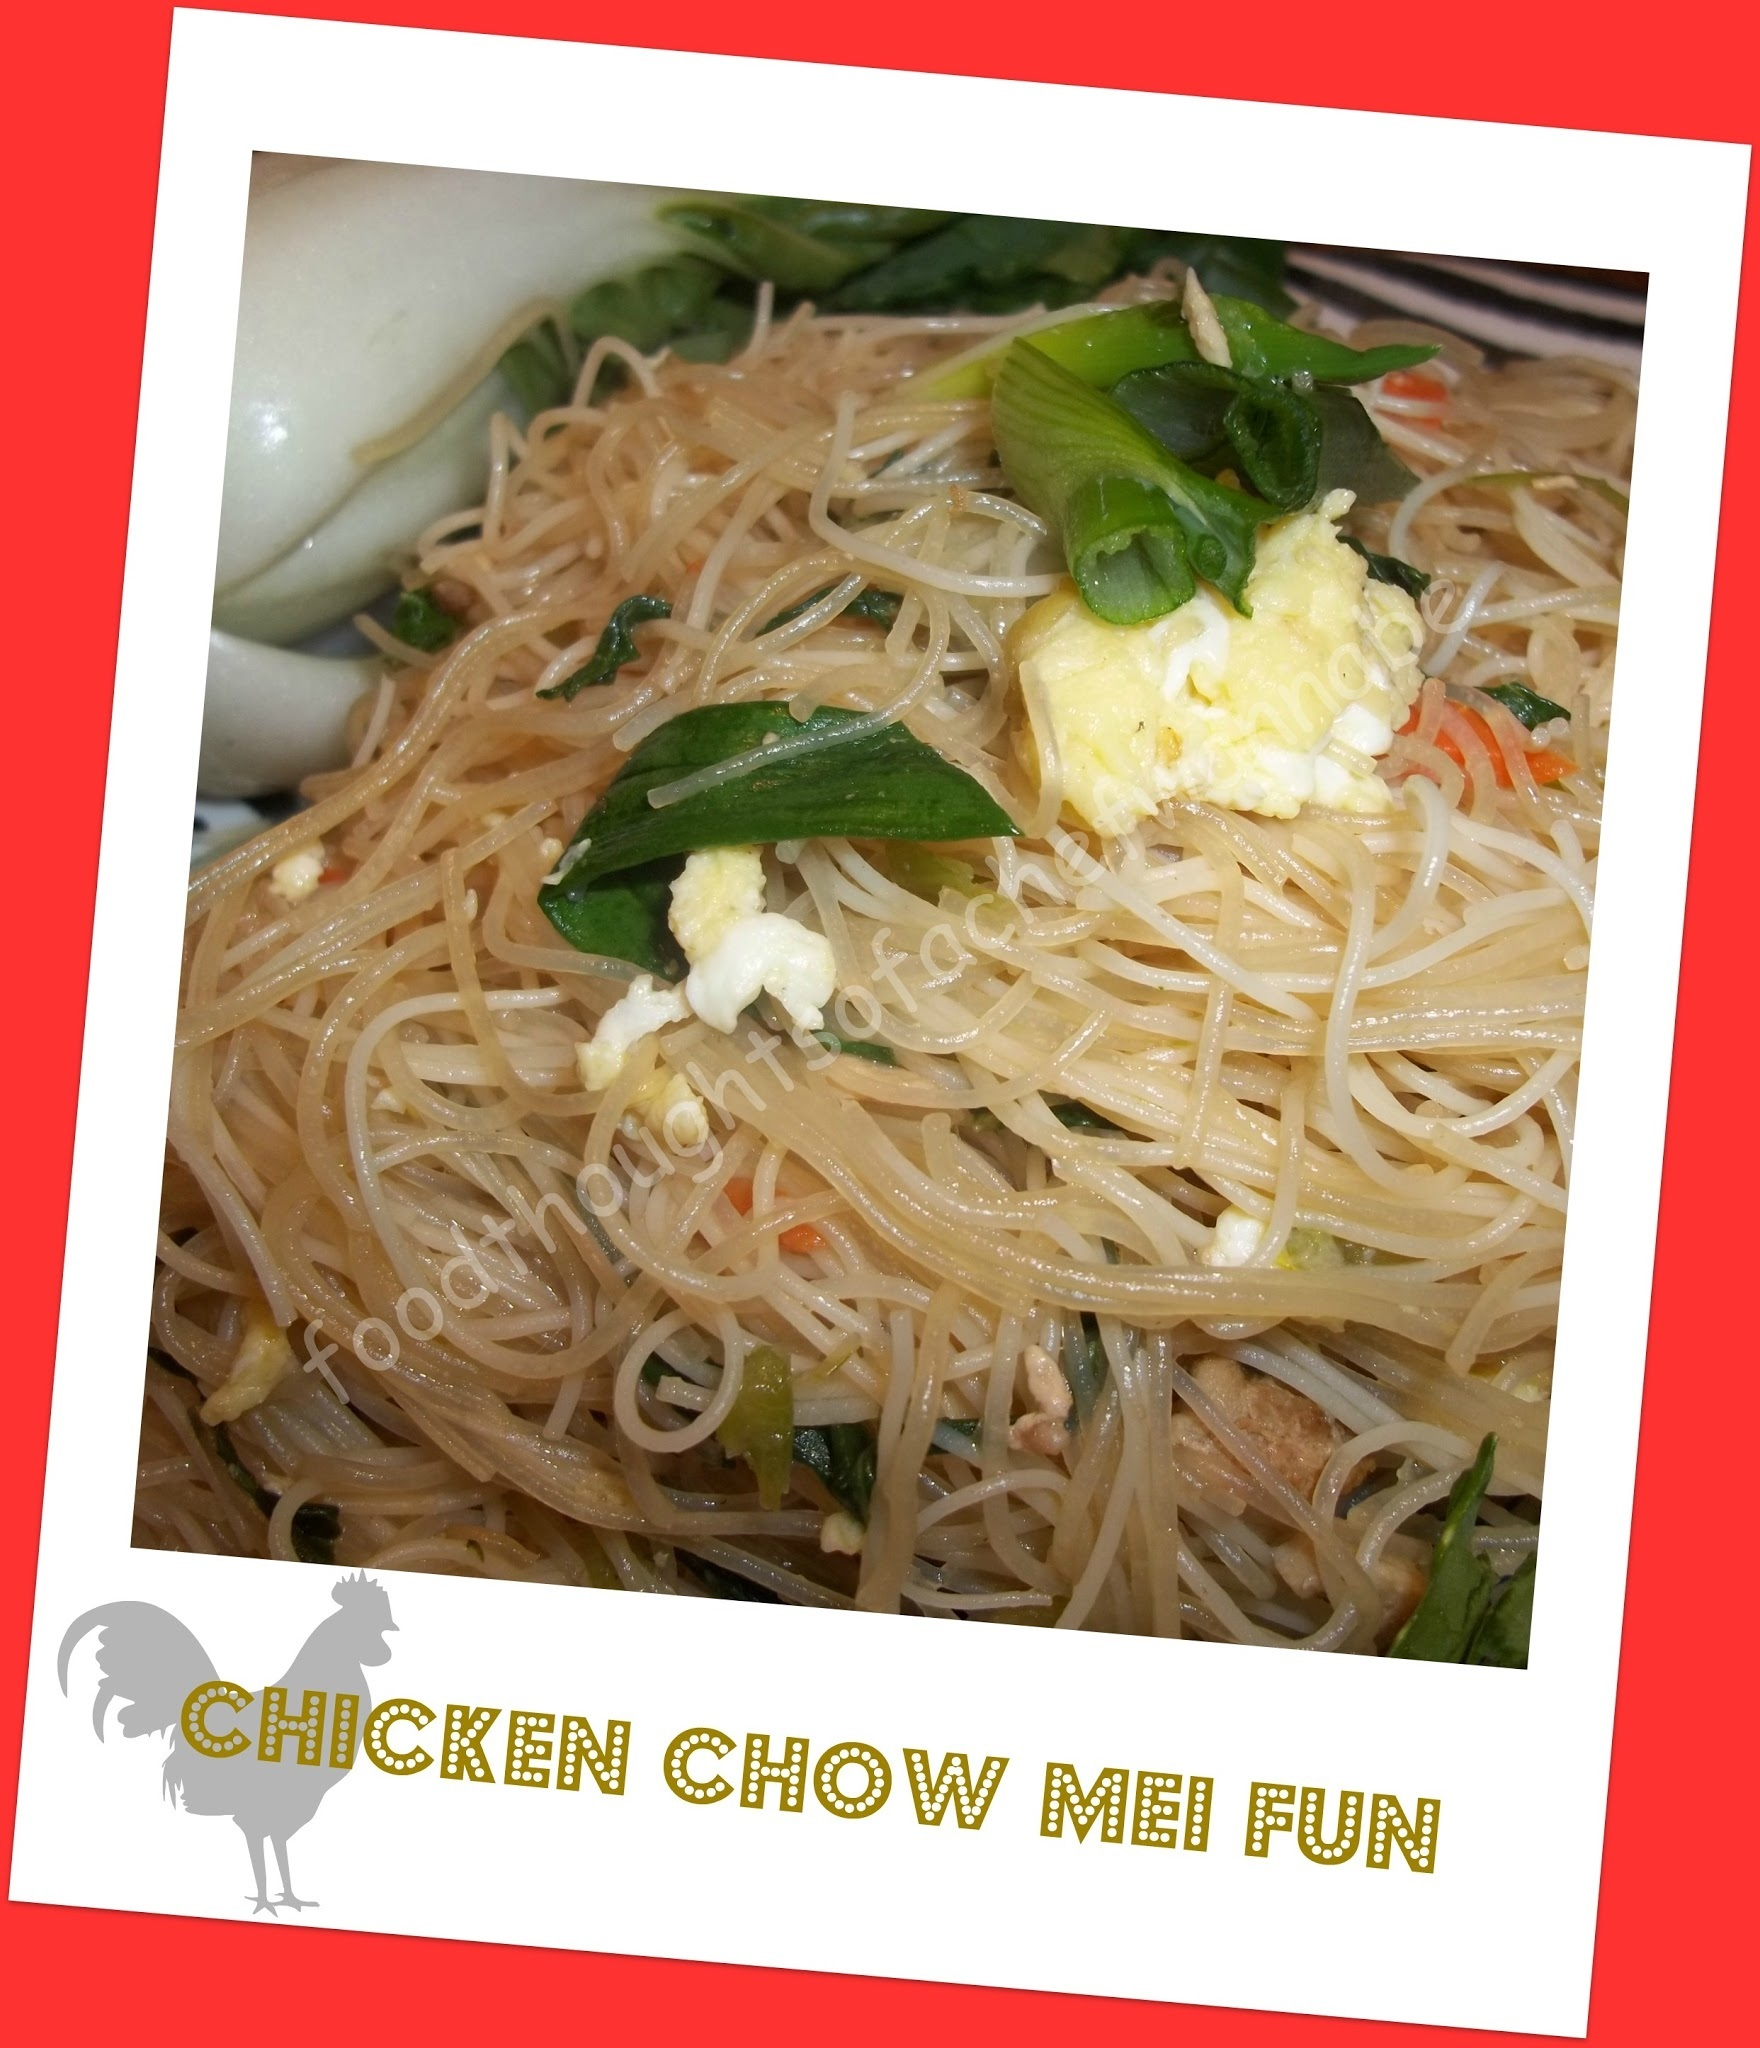 Chinese Takeout - Chicken Chow Mei Fun